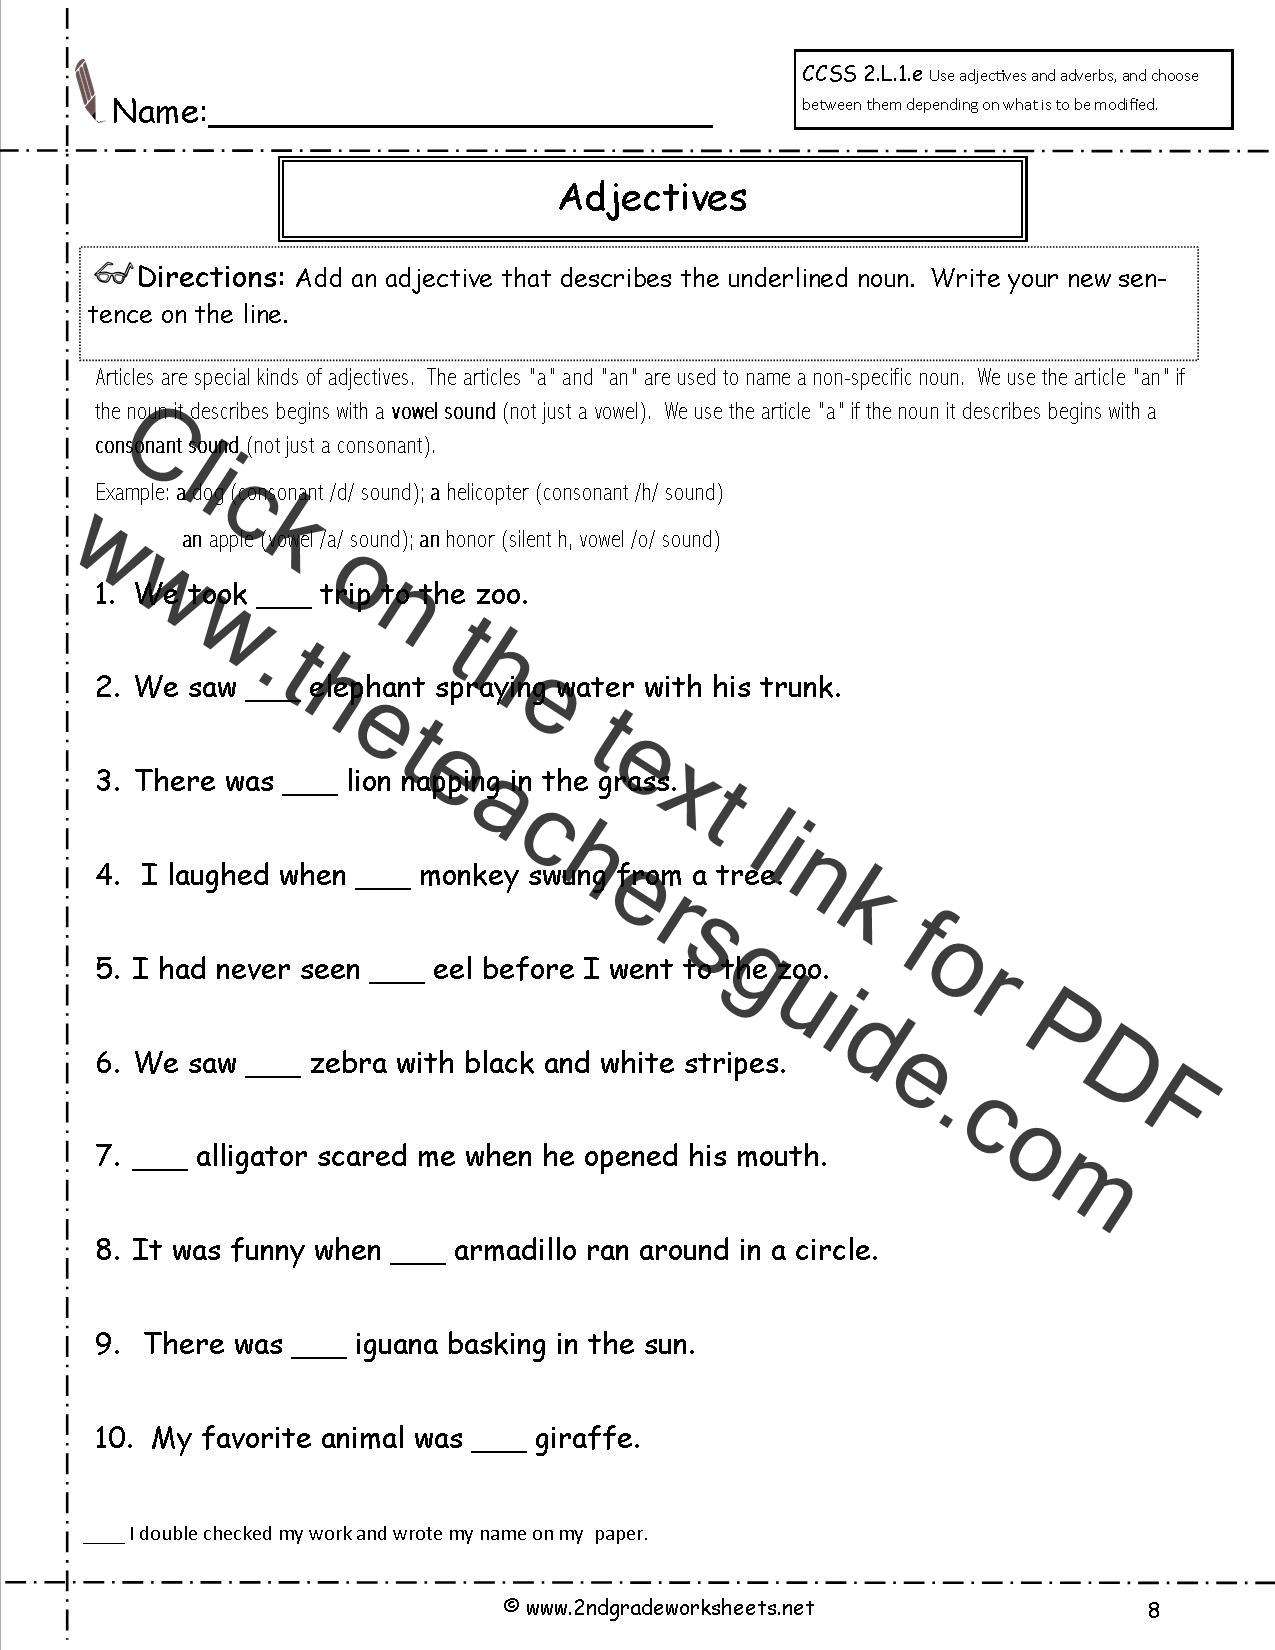 worksheet Verb Worksheets 2nd Grade free languagegrammar worksheets and printouts adjectives worksheets